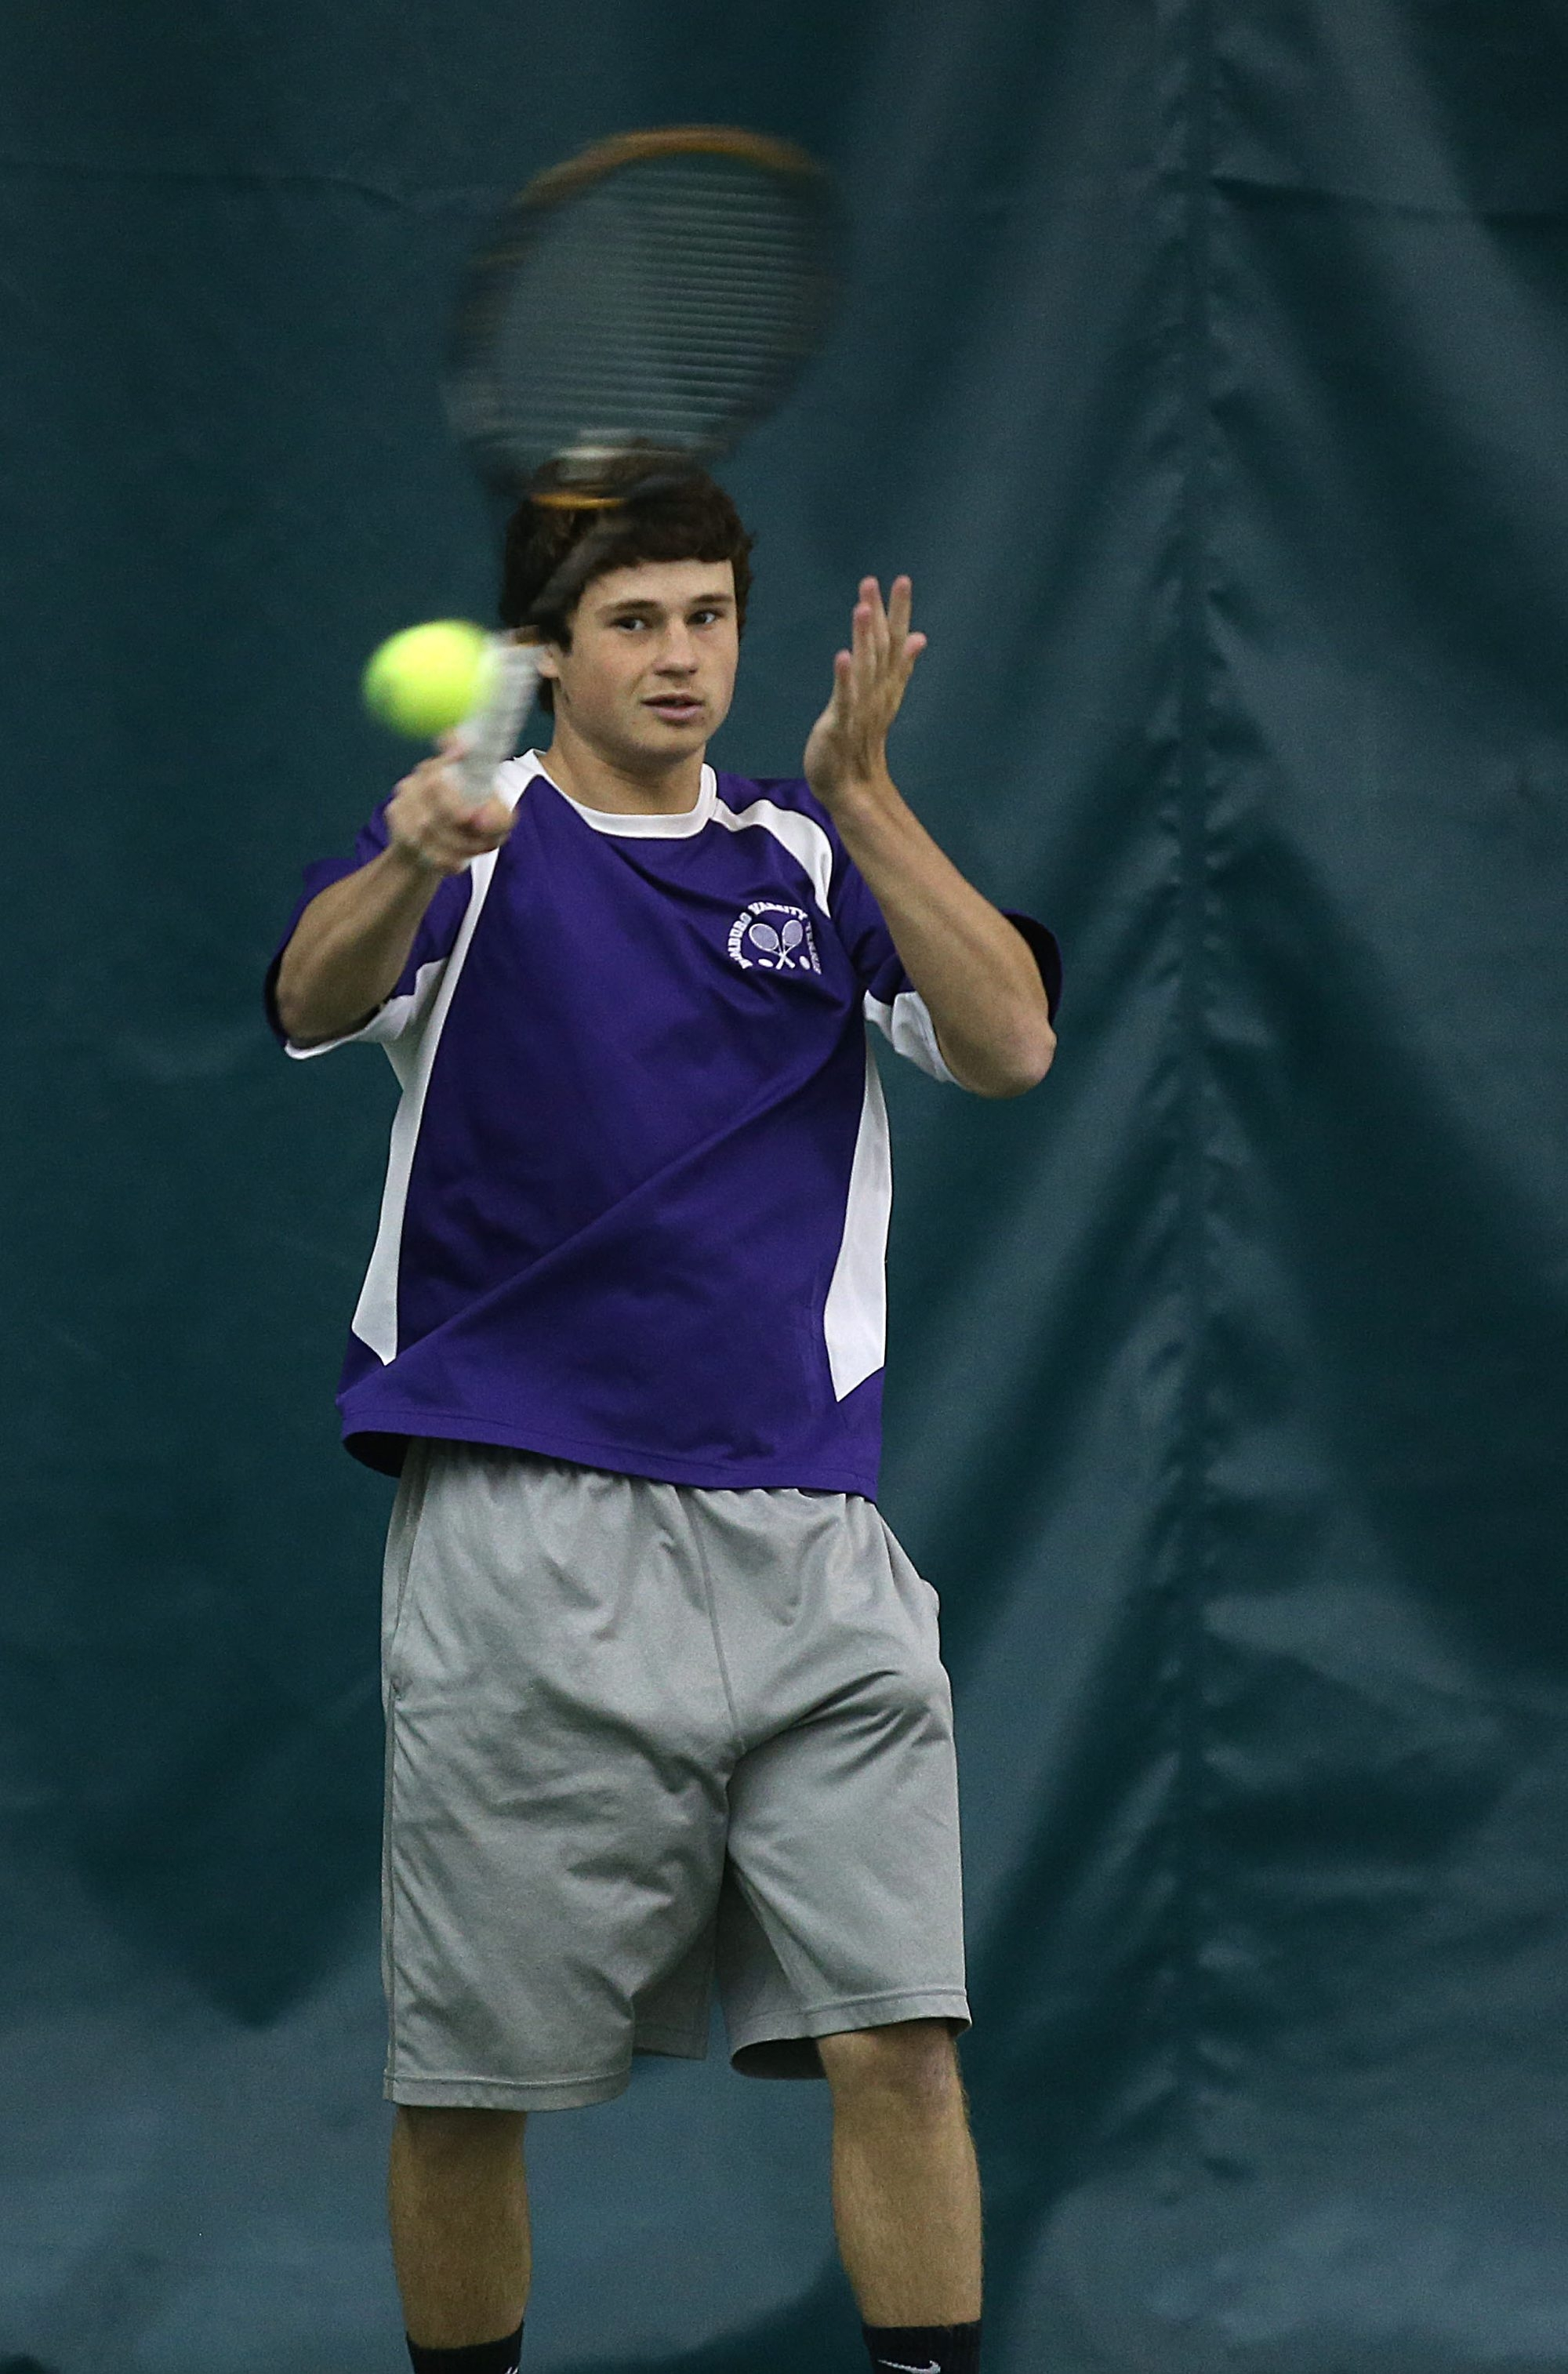 Timothy Kane, of Hamburg, warms up before his final match in the Section VI tennis championships Friday.